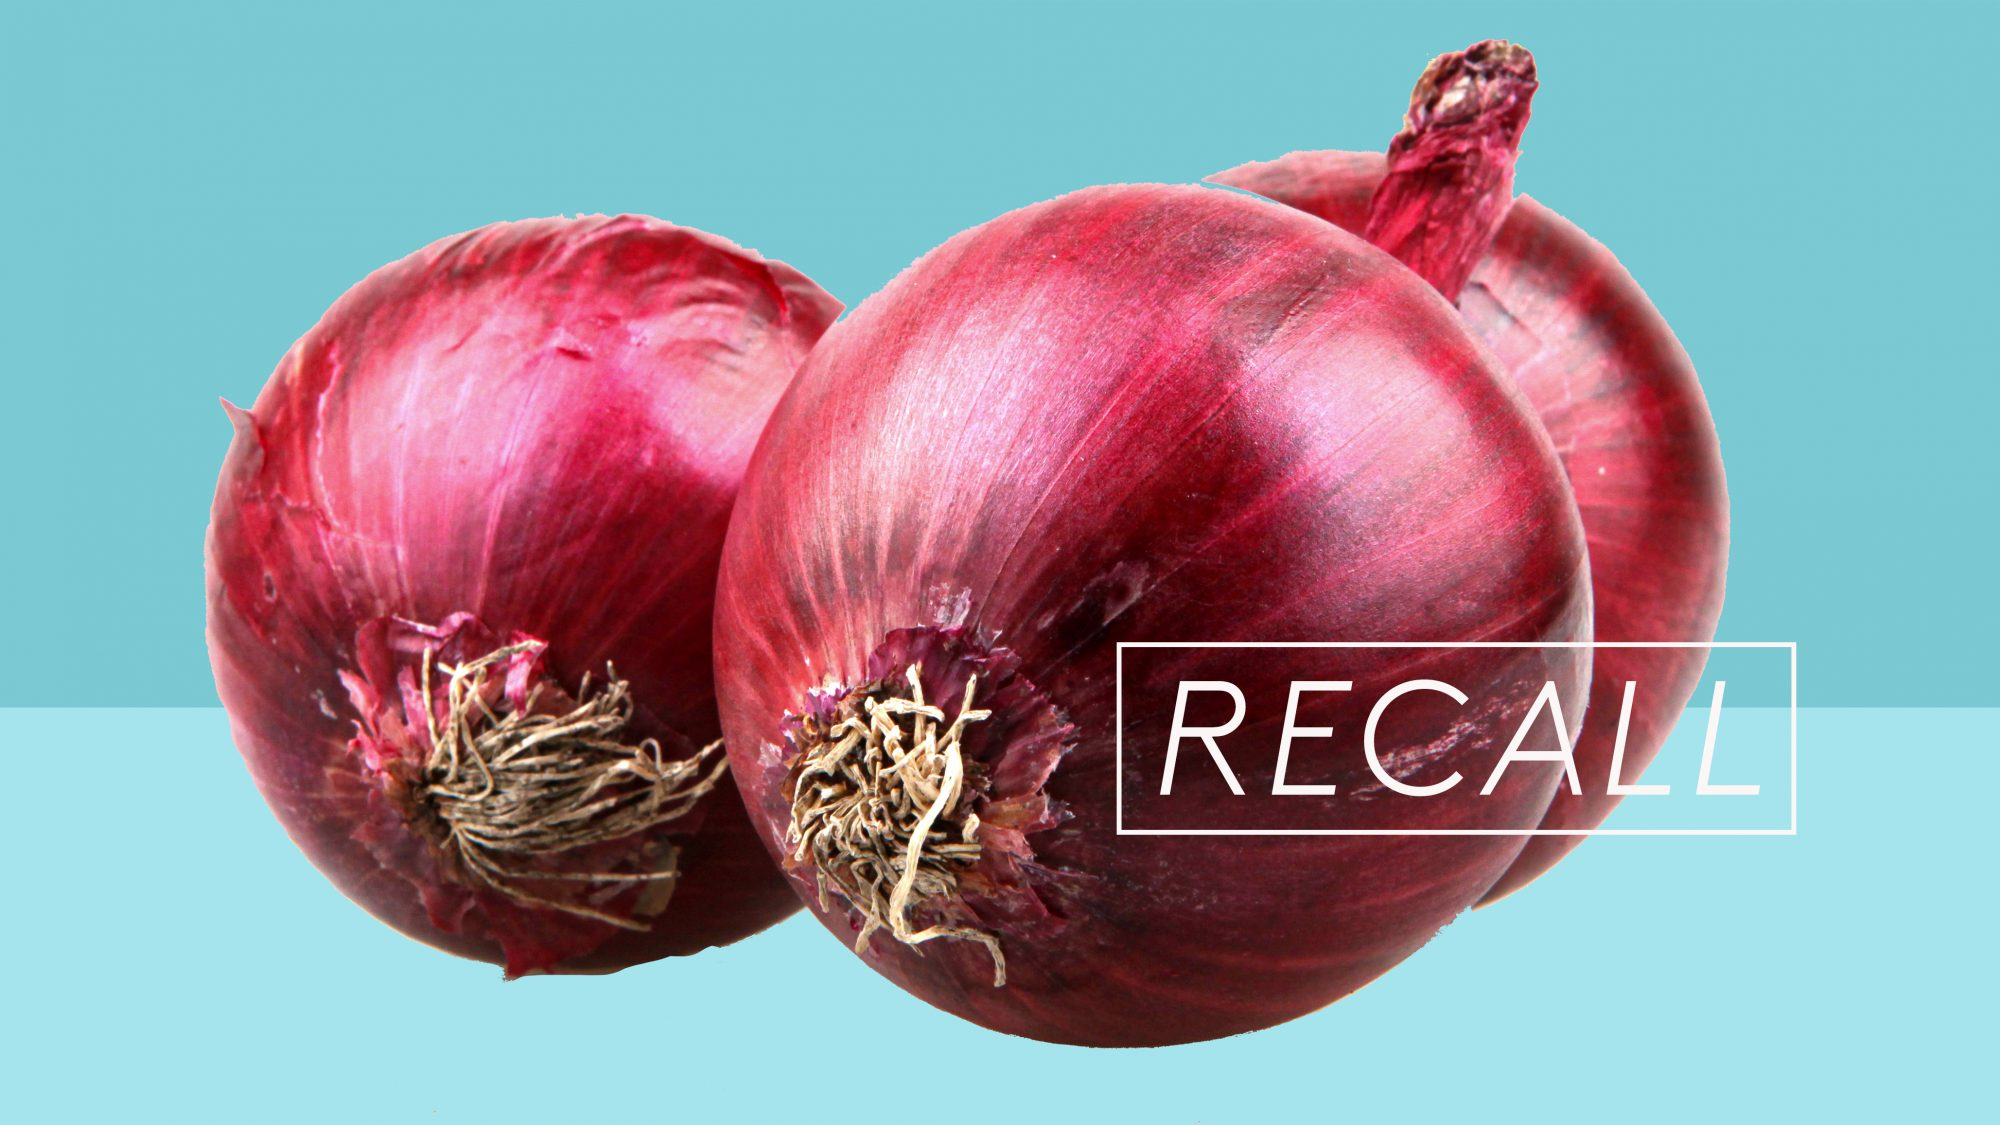 Thomson International Inc. Recalls All Onions Nationwide Due to Salmonella Risk